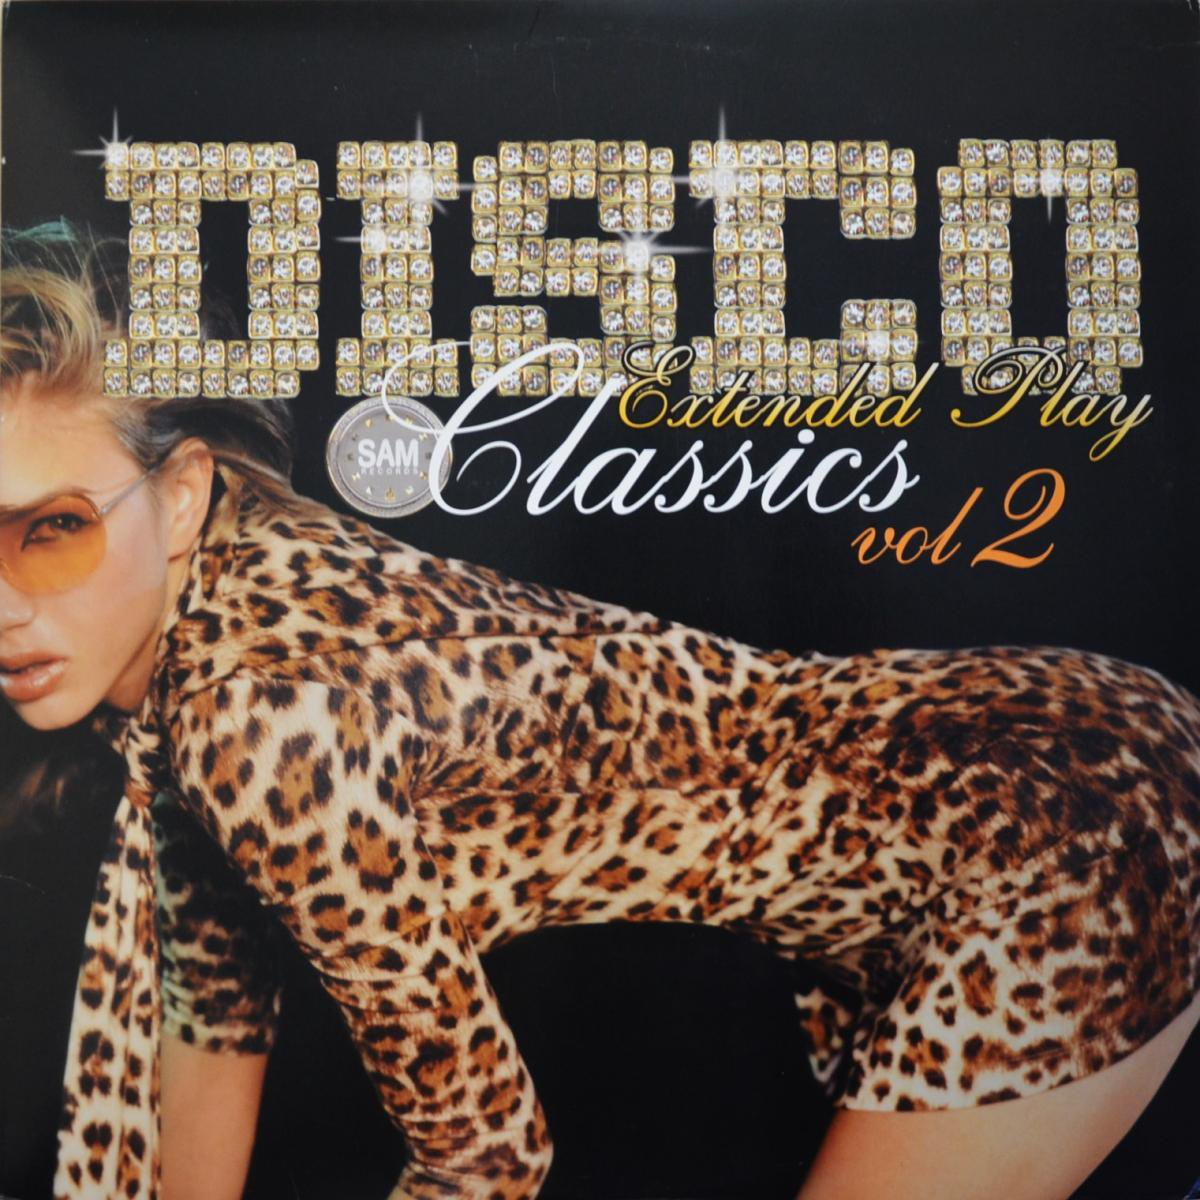 V.A. (John Davis,K.I.D.,Rhyze...) / DISCO CLASSICS(Sam Records Extended Play VOL.2) (2LP)